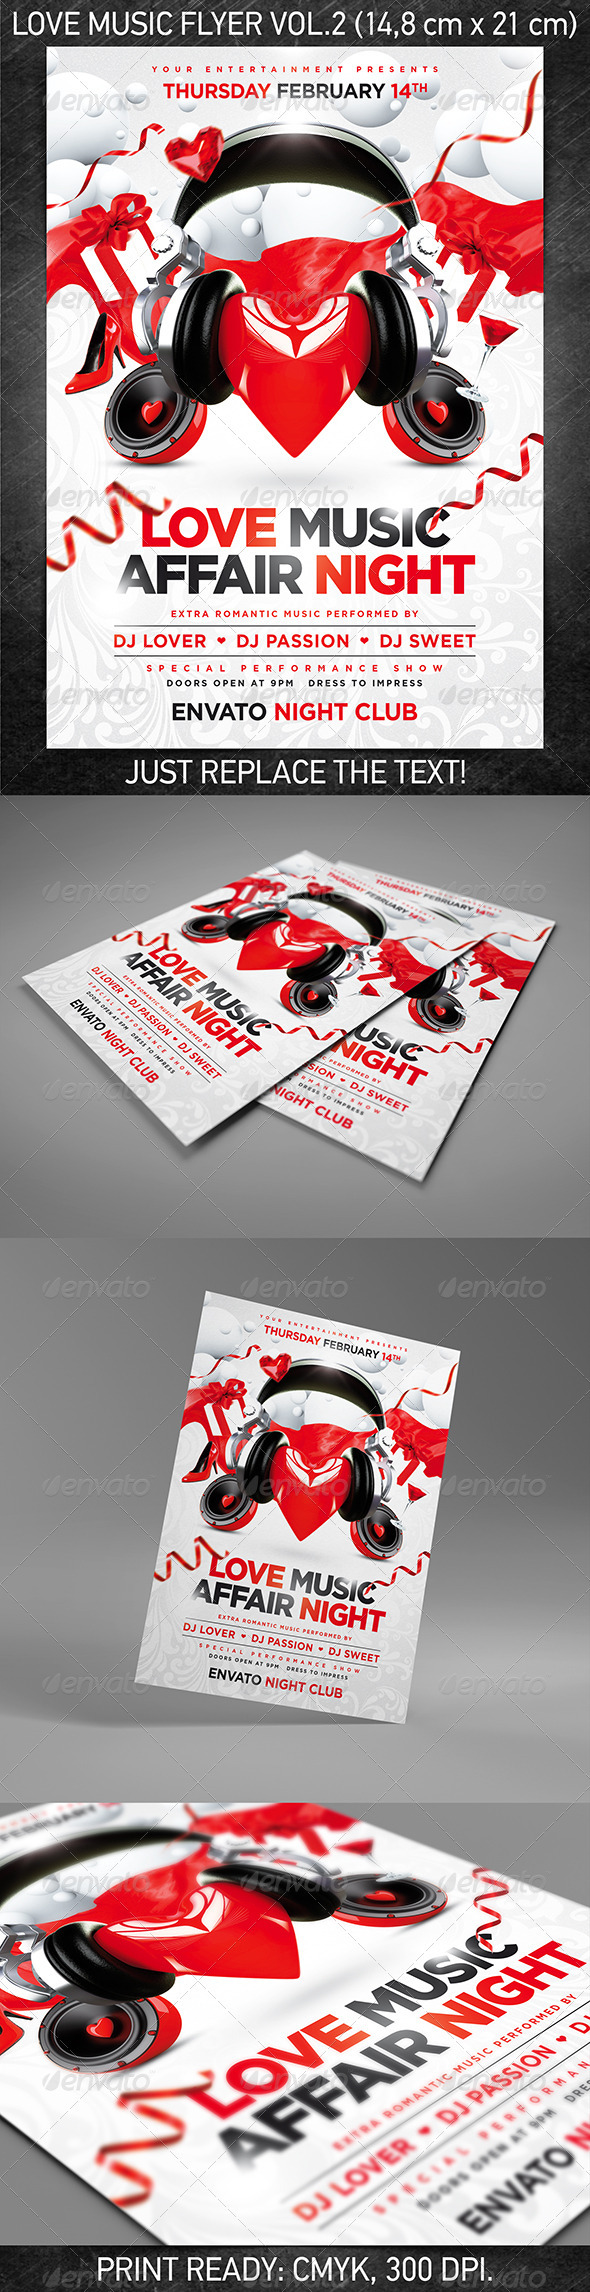 Love music flyer vol.2 - Events Flyers